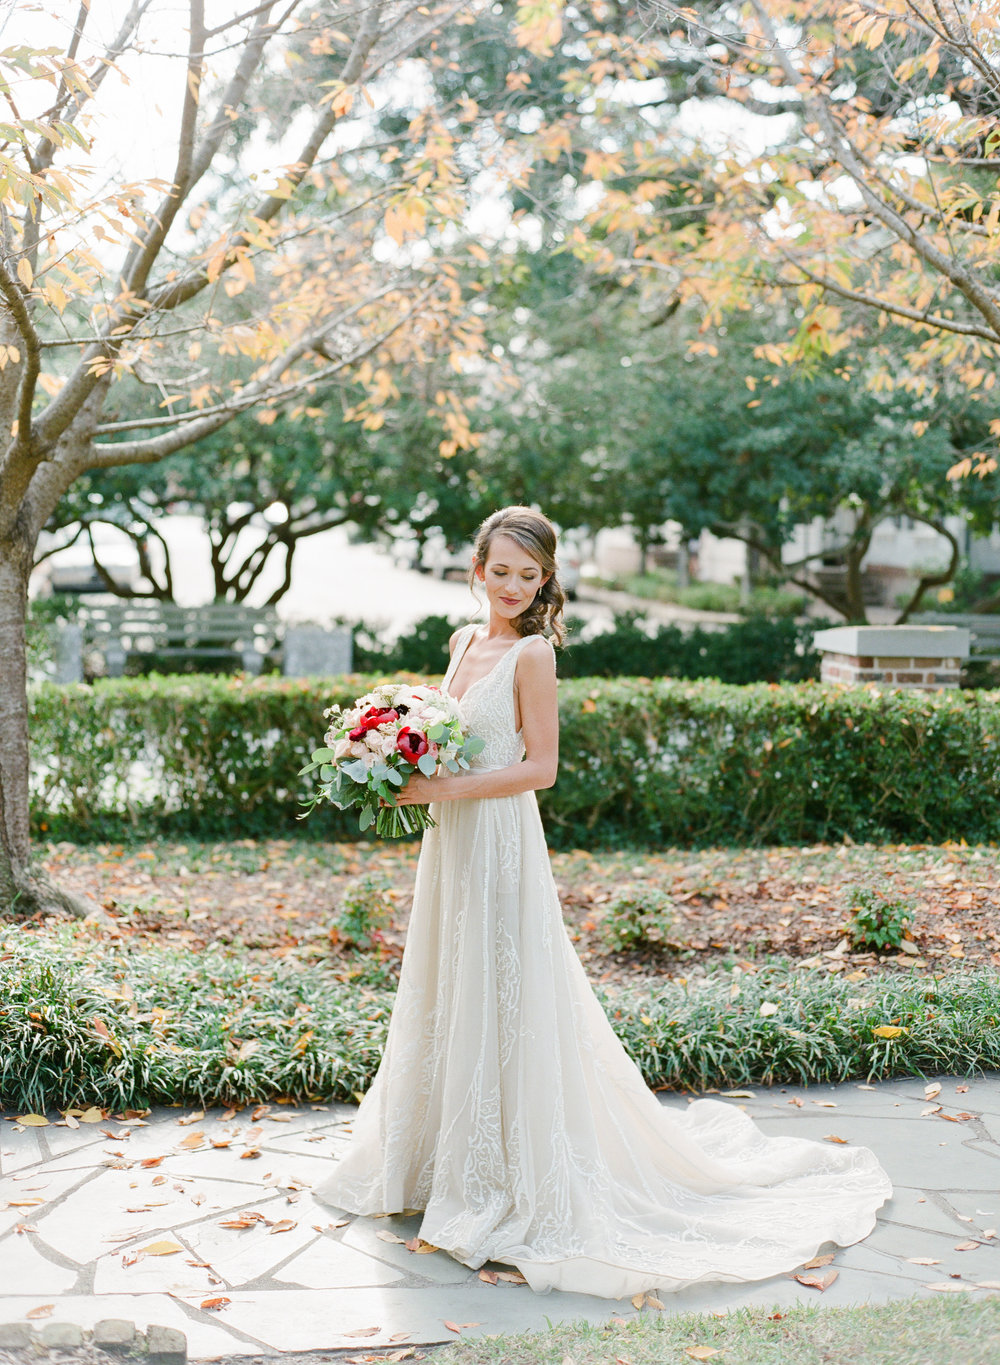 ivory-and-beau-bridal-boutique-savannah-wedding-planner-the-happy-bloom-photography-bethesda-academy-wedding-morris-center-wedding-savannah-wedding-5.jpg